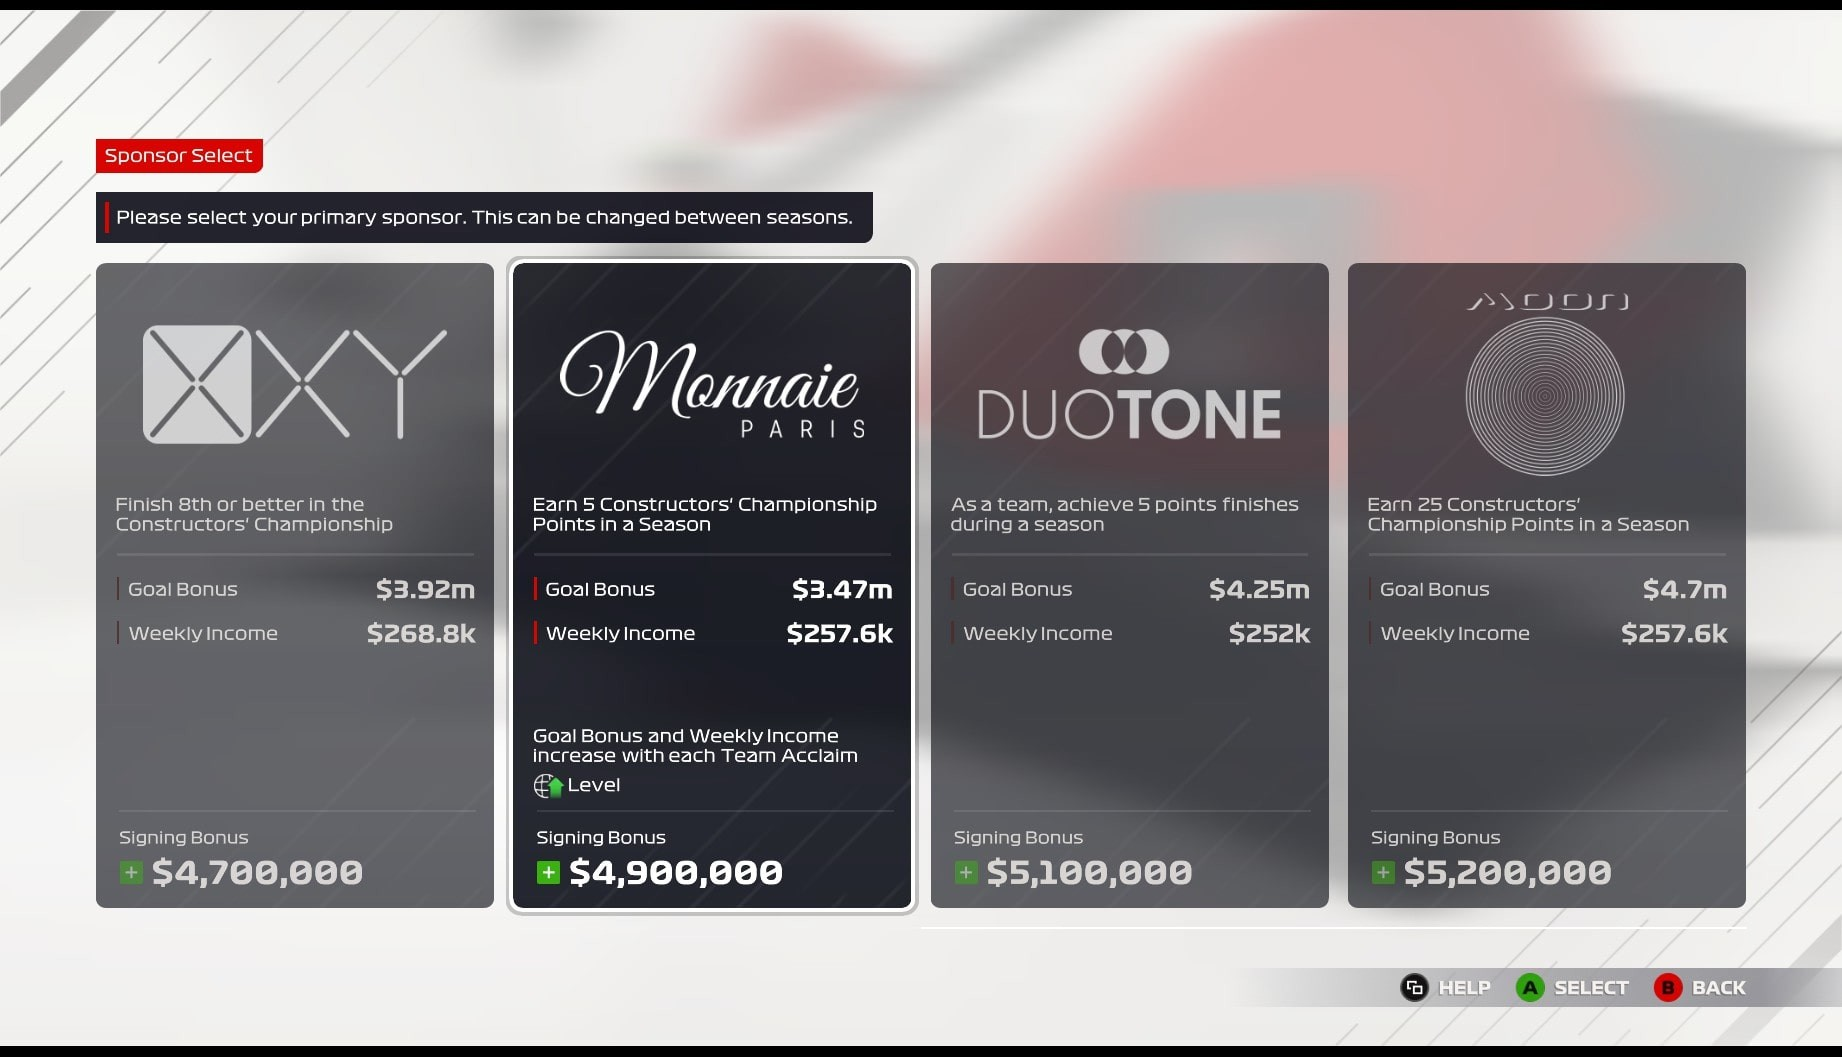 An image of the sponsor selection screen in F1 2021's My Team mode.